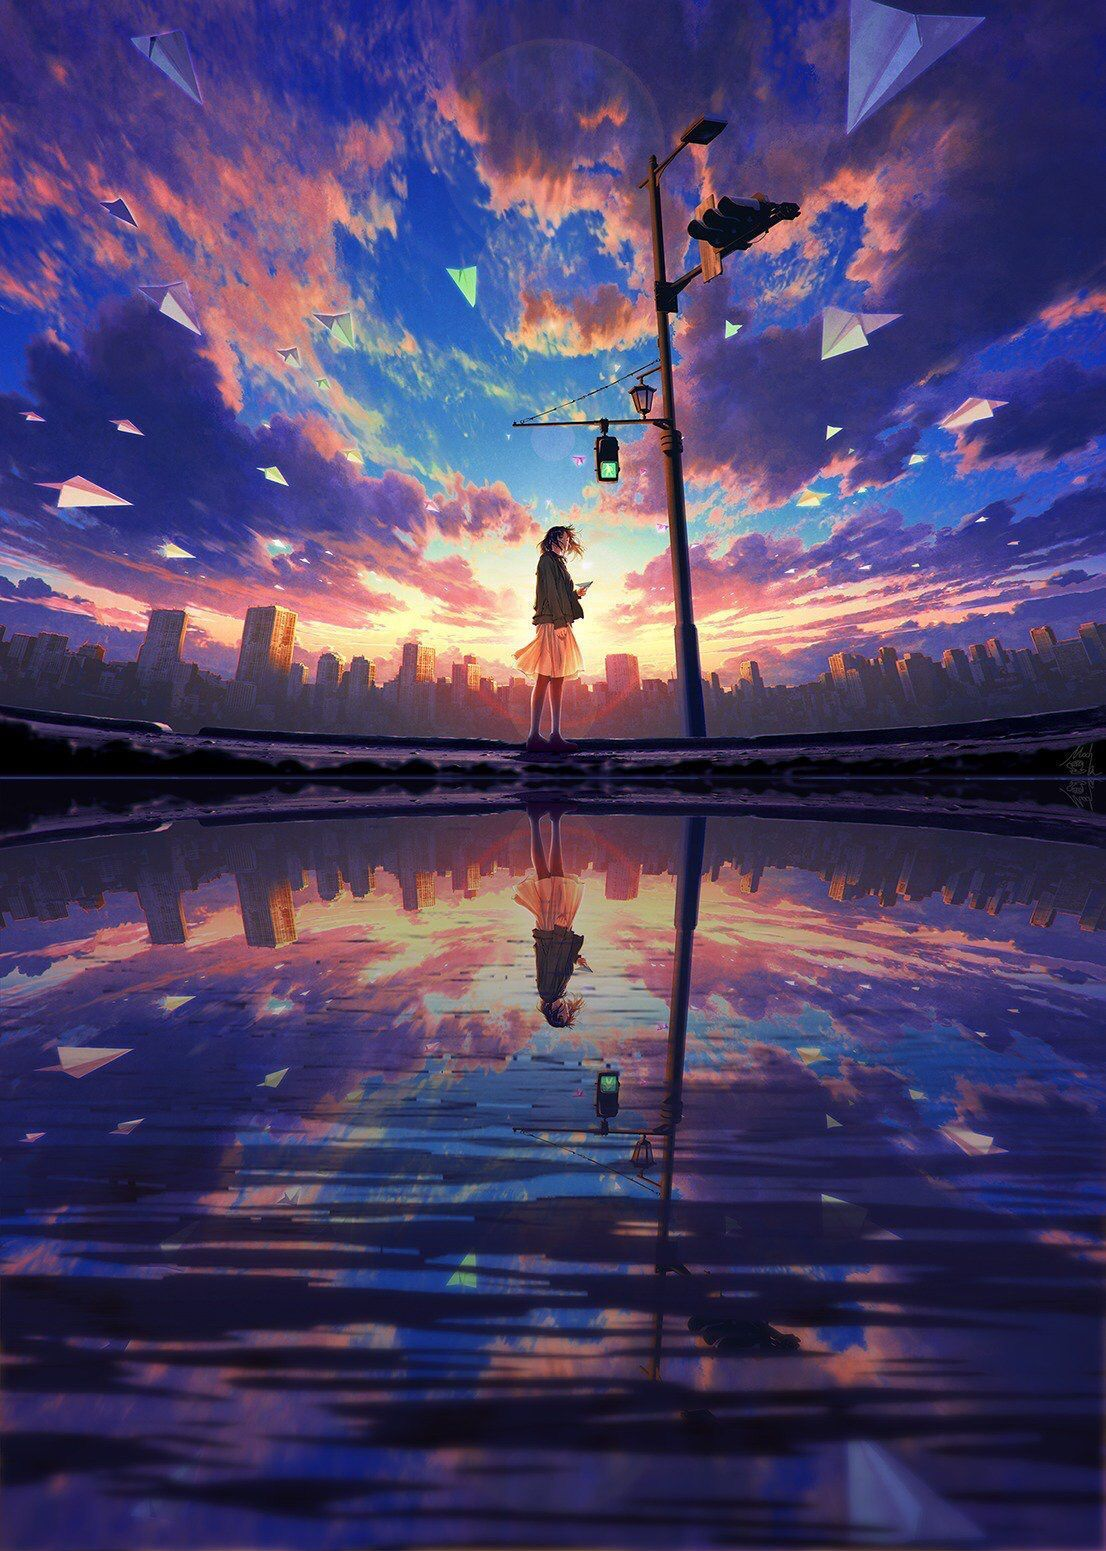 Idea By Rutali Thurr On Anime Wallpapers In 2020 Anime Scenery Wallpaper Anime Scenery Scenery Wallpaper